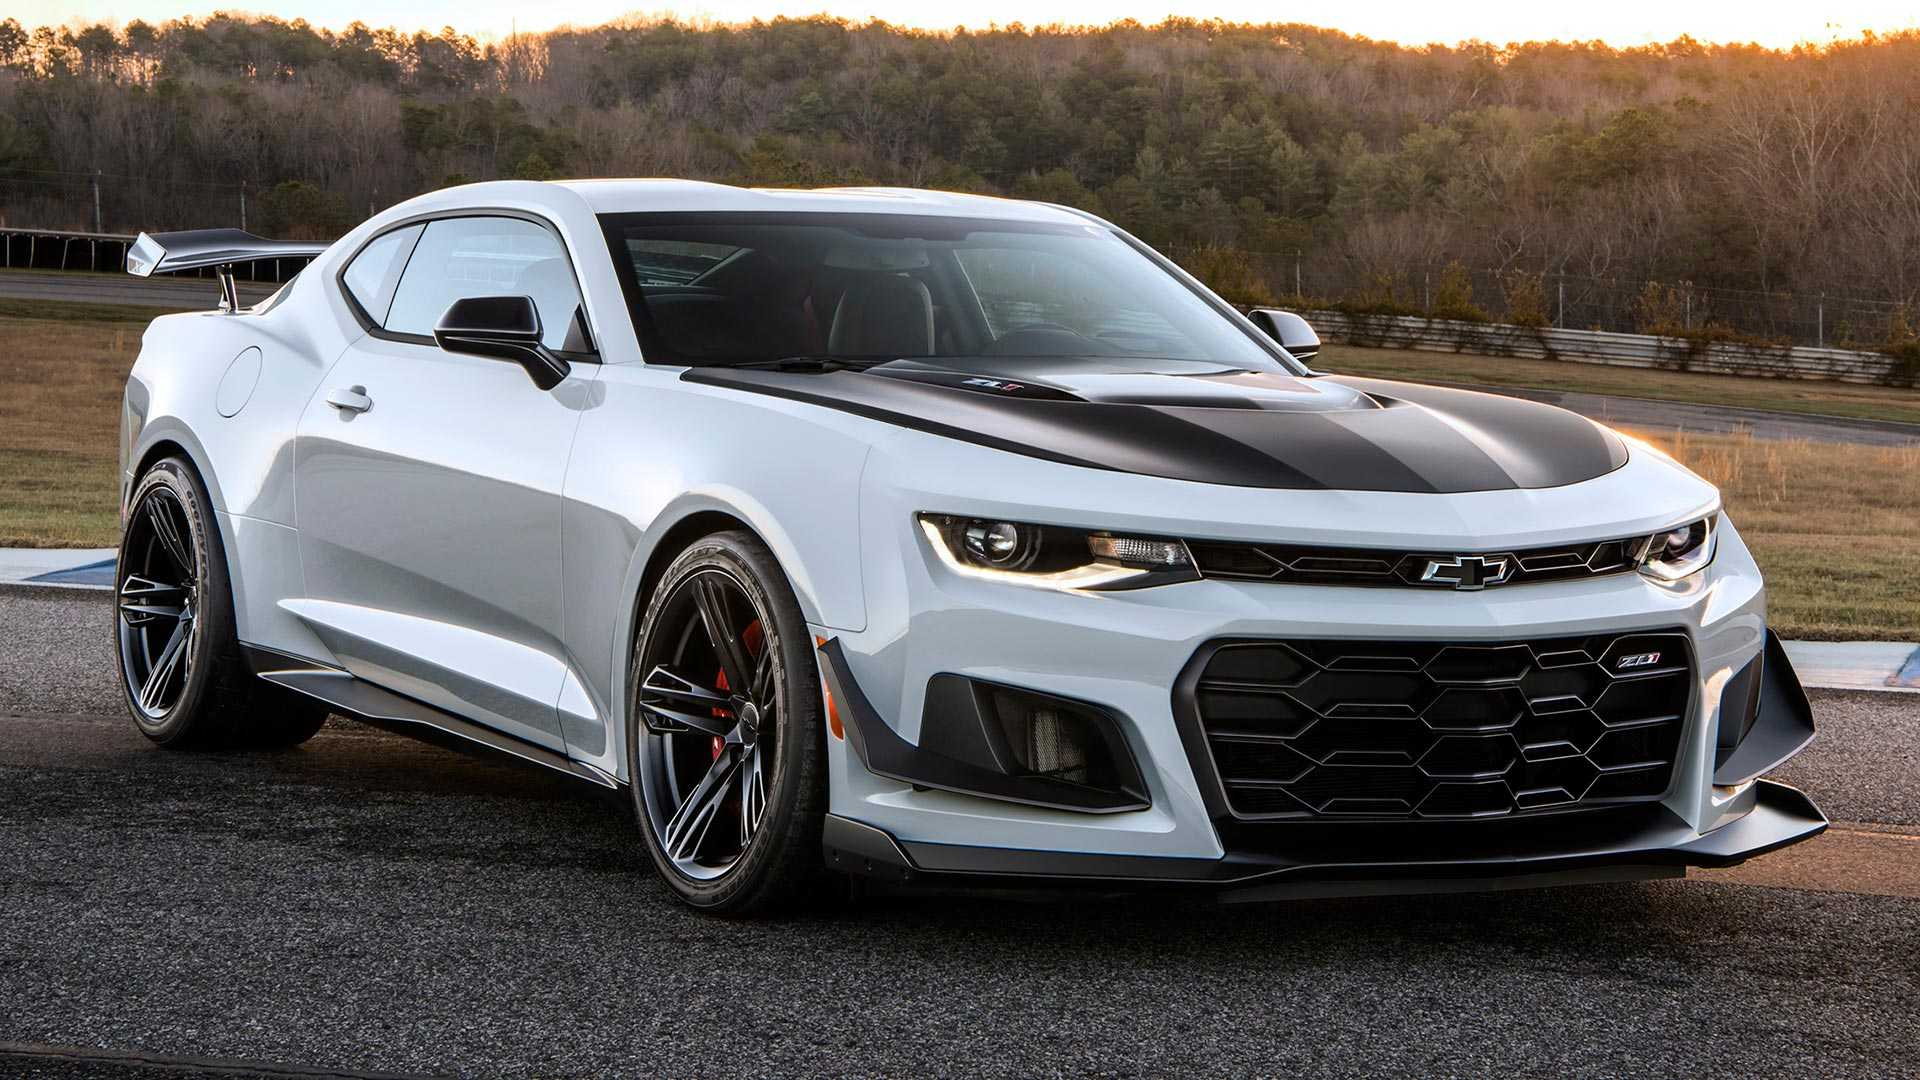 24 New 2019 Chevy Camaro Model